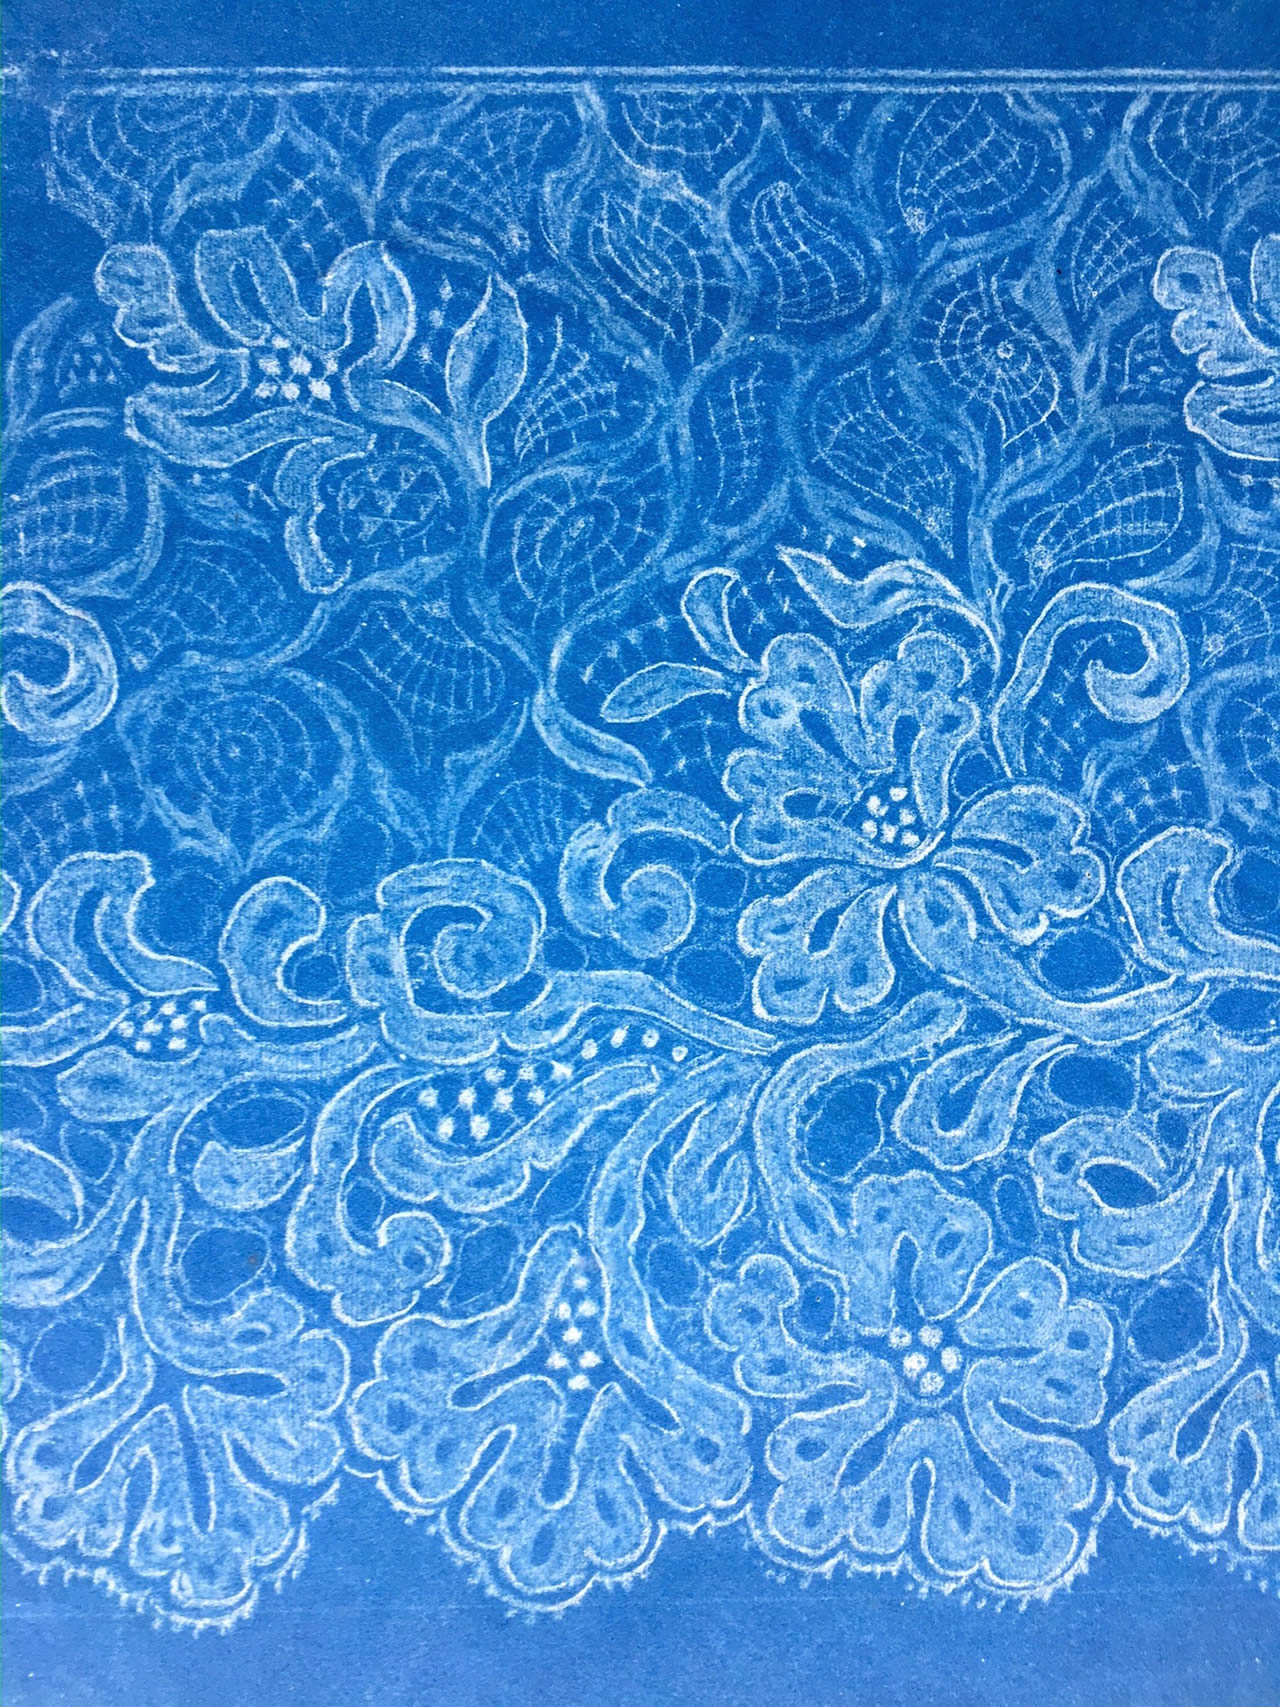 Antique Cyanotype of Lace